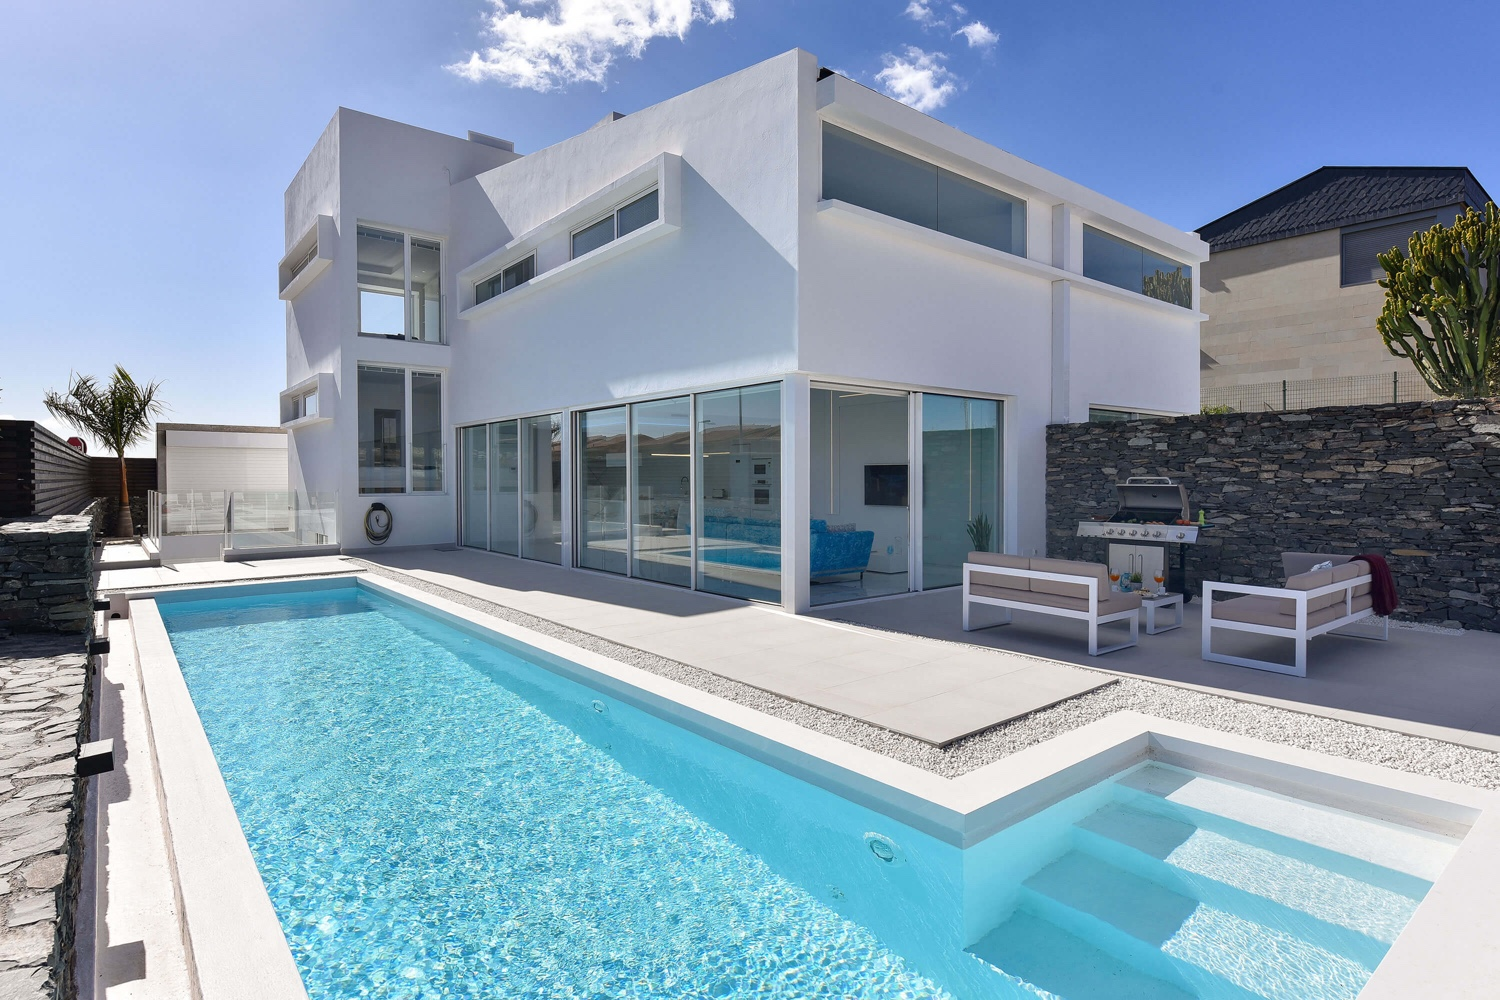 Modern luxury villa over 4 levels with high-quality equipment, large heatable private pool and ideal location only a few minutes from the beach of Meloneras and Maspalomas